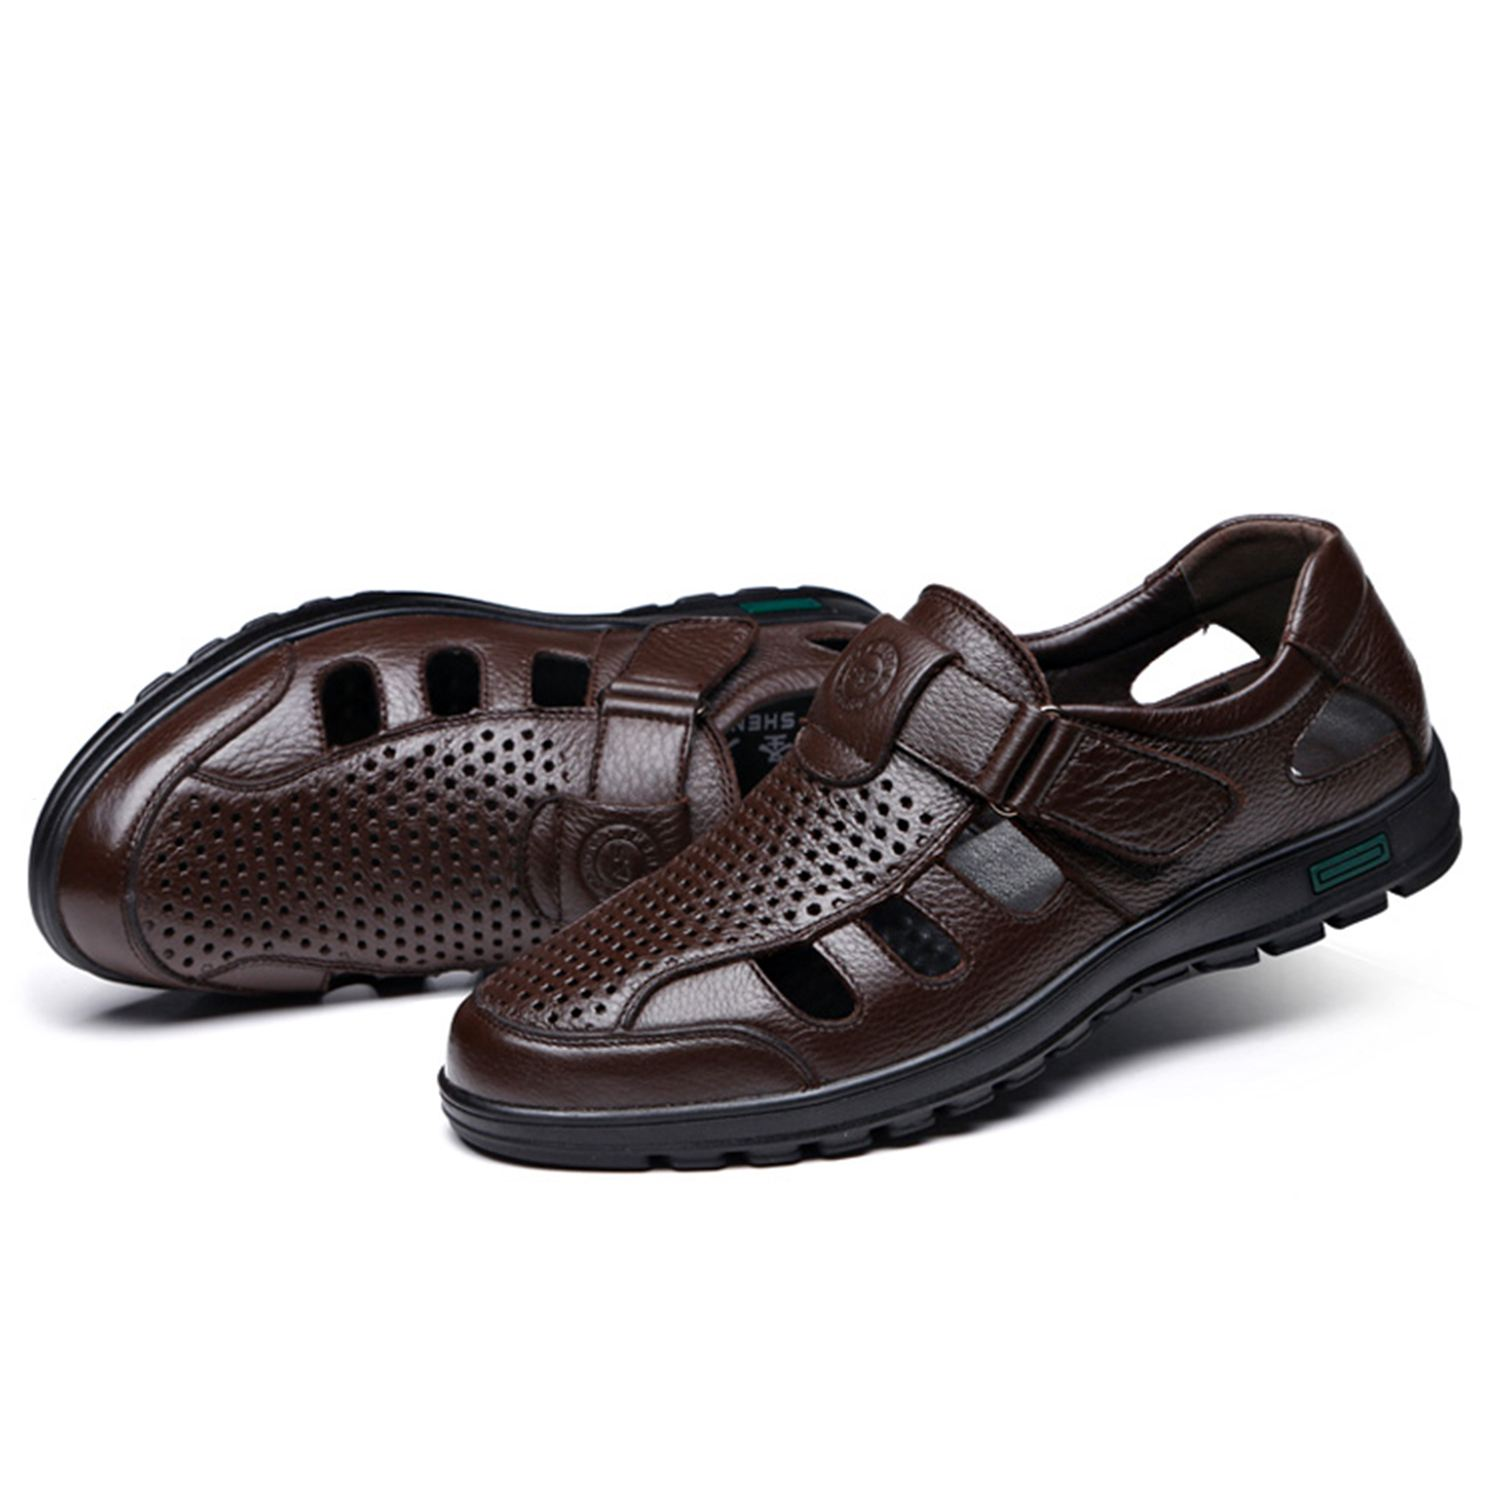 Image 2 - FGGS Genuine Leather Men Sandals Shoes Fretwork Breathable Fisherman Shoes Style Retro Gladiator Soft Bottom summer Classics m-in Men's Sandals from Shoes